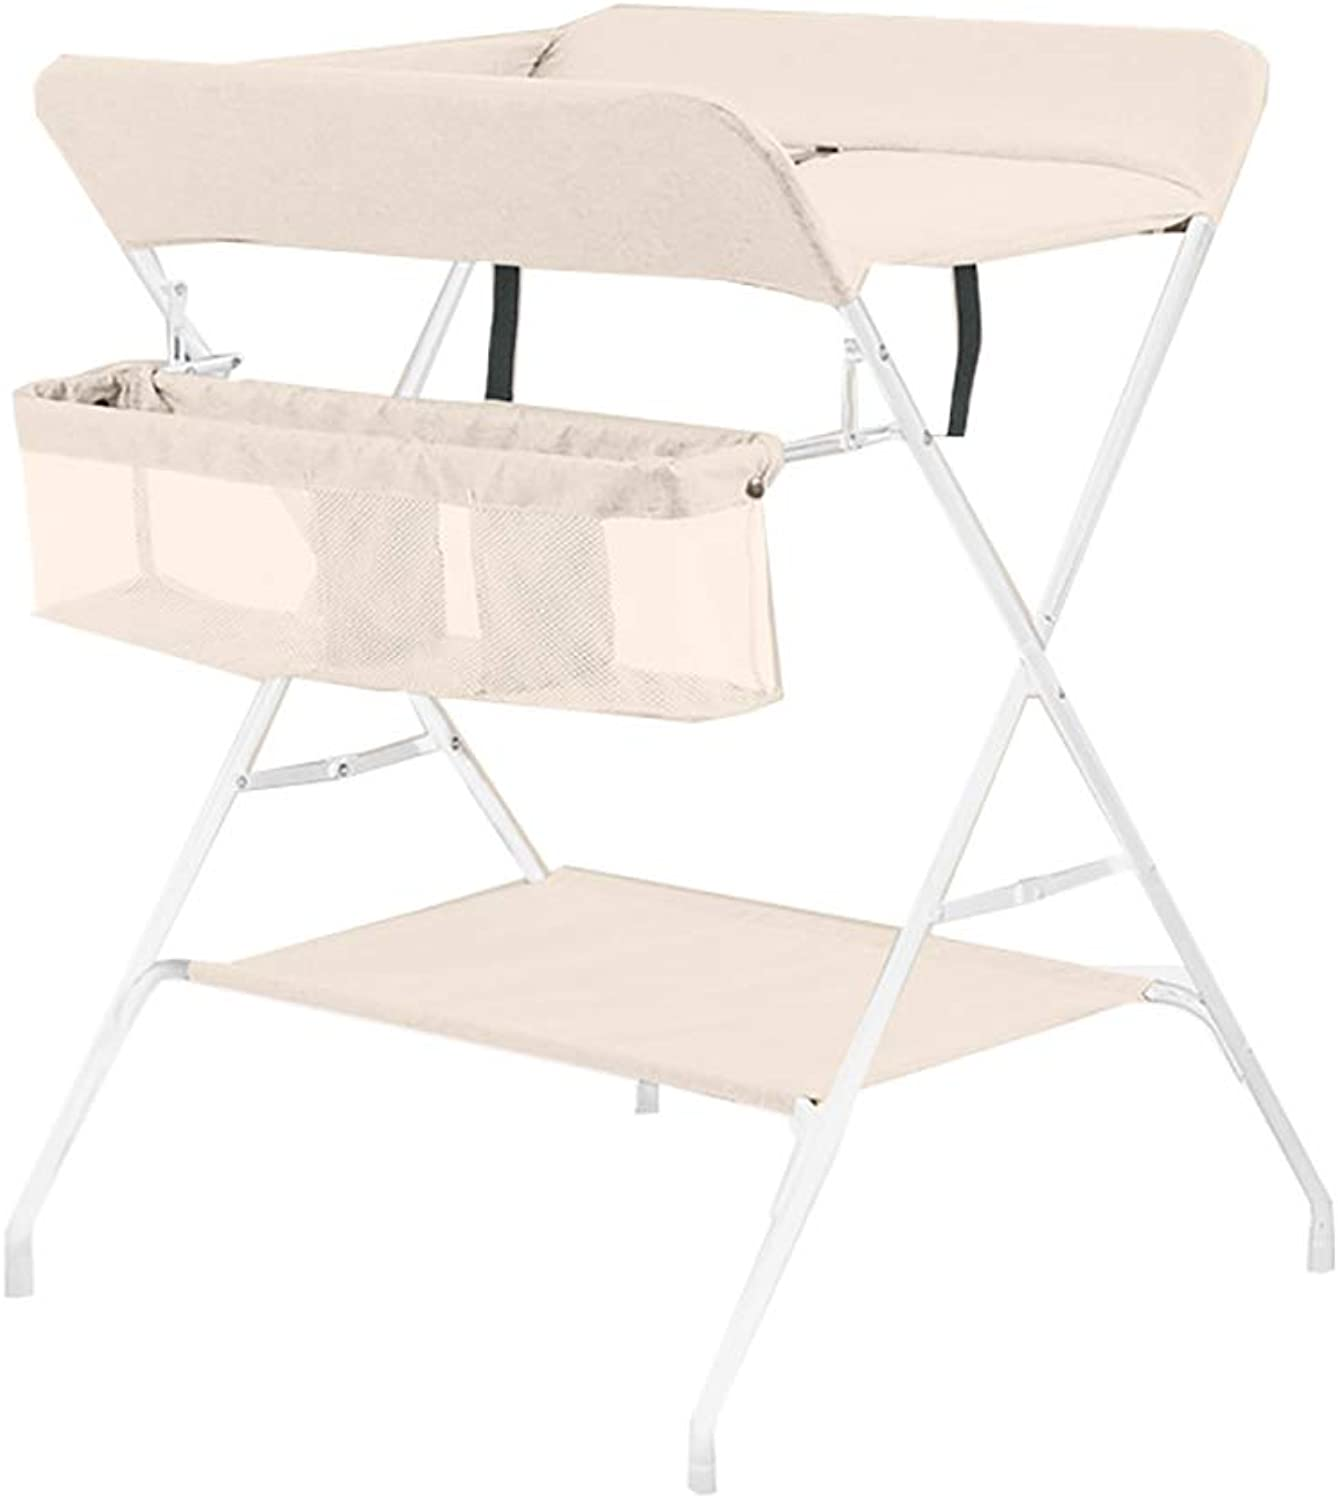 Folding Diaper Station Massage Station for Narrow Space, Portable Baby Changing Table, Dresser with Storage for Infant (color   Catkins White)